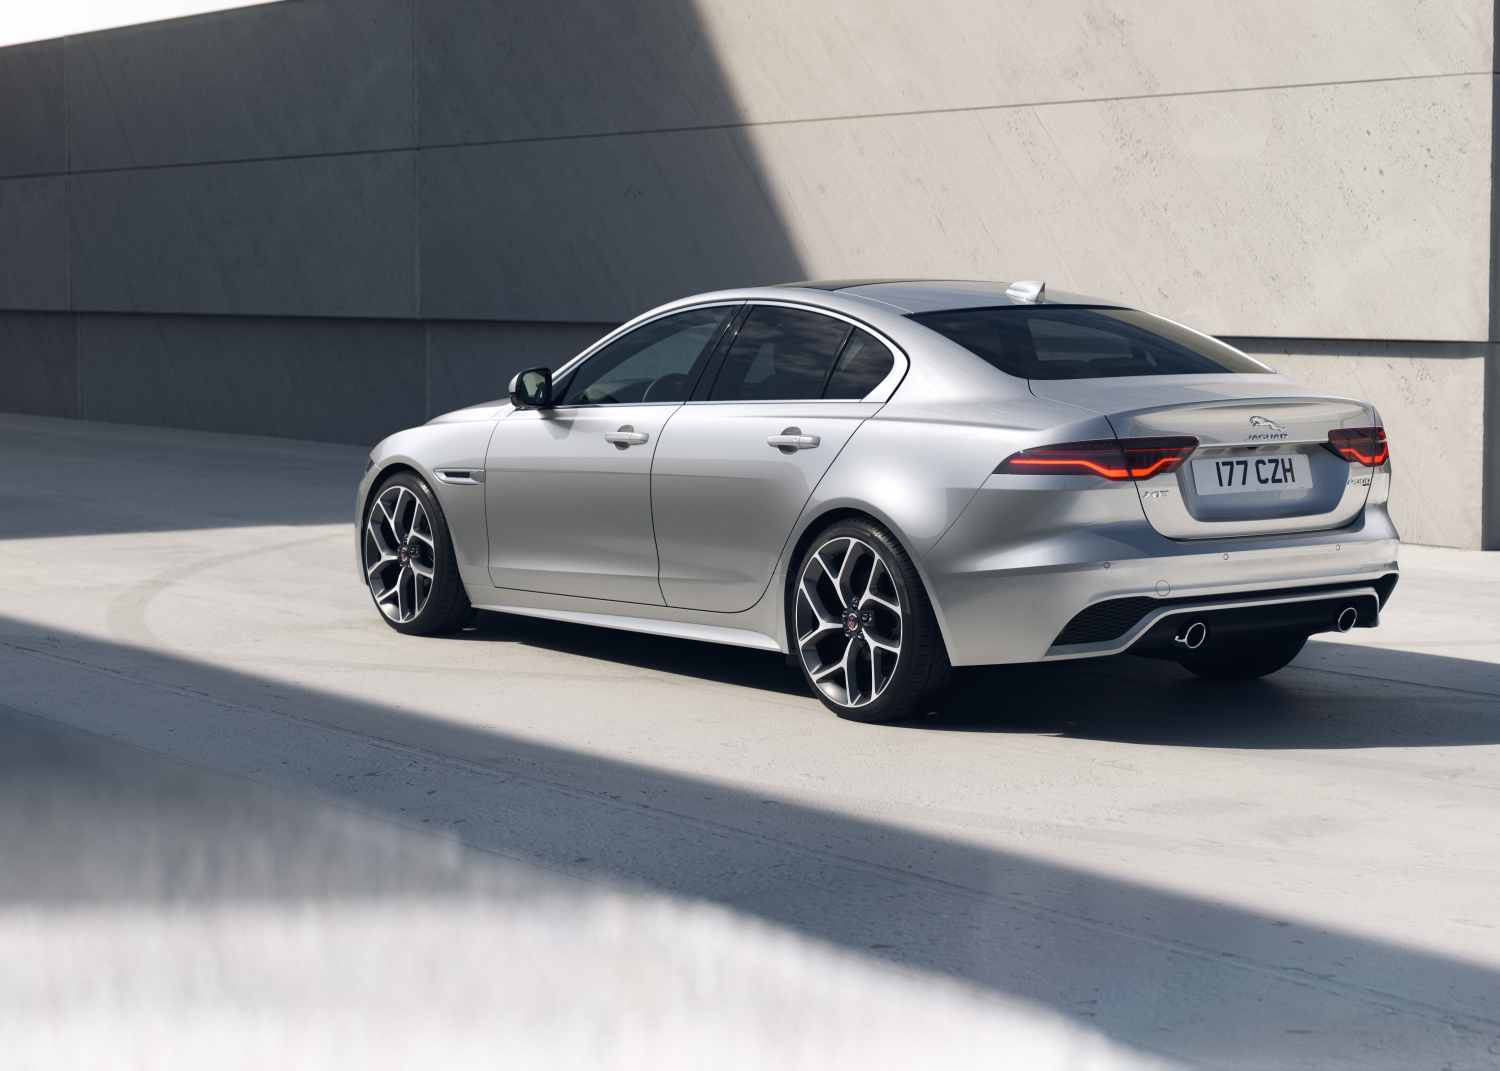 XE R-Dynamic HSE – Hakuba Silver with Light Oyster Interior